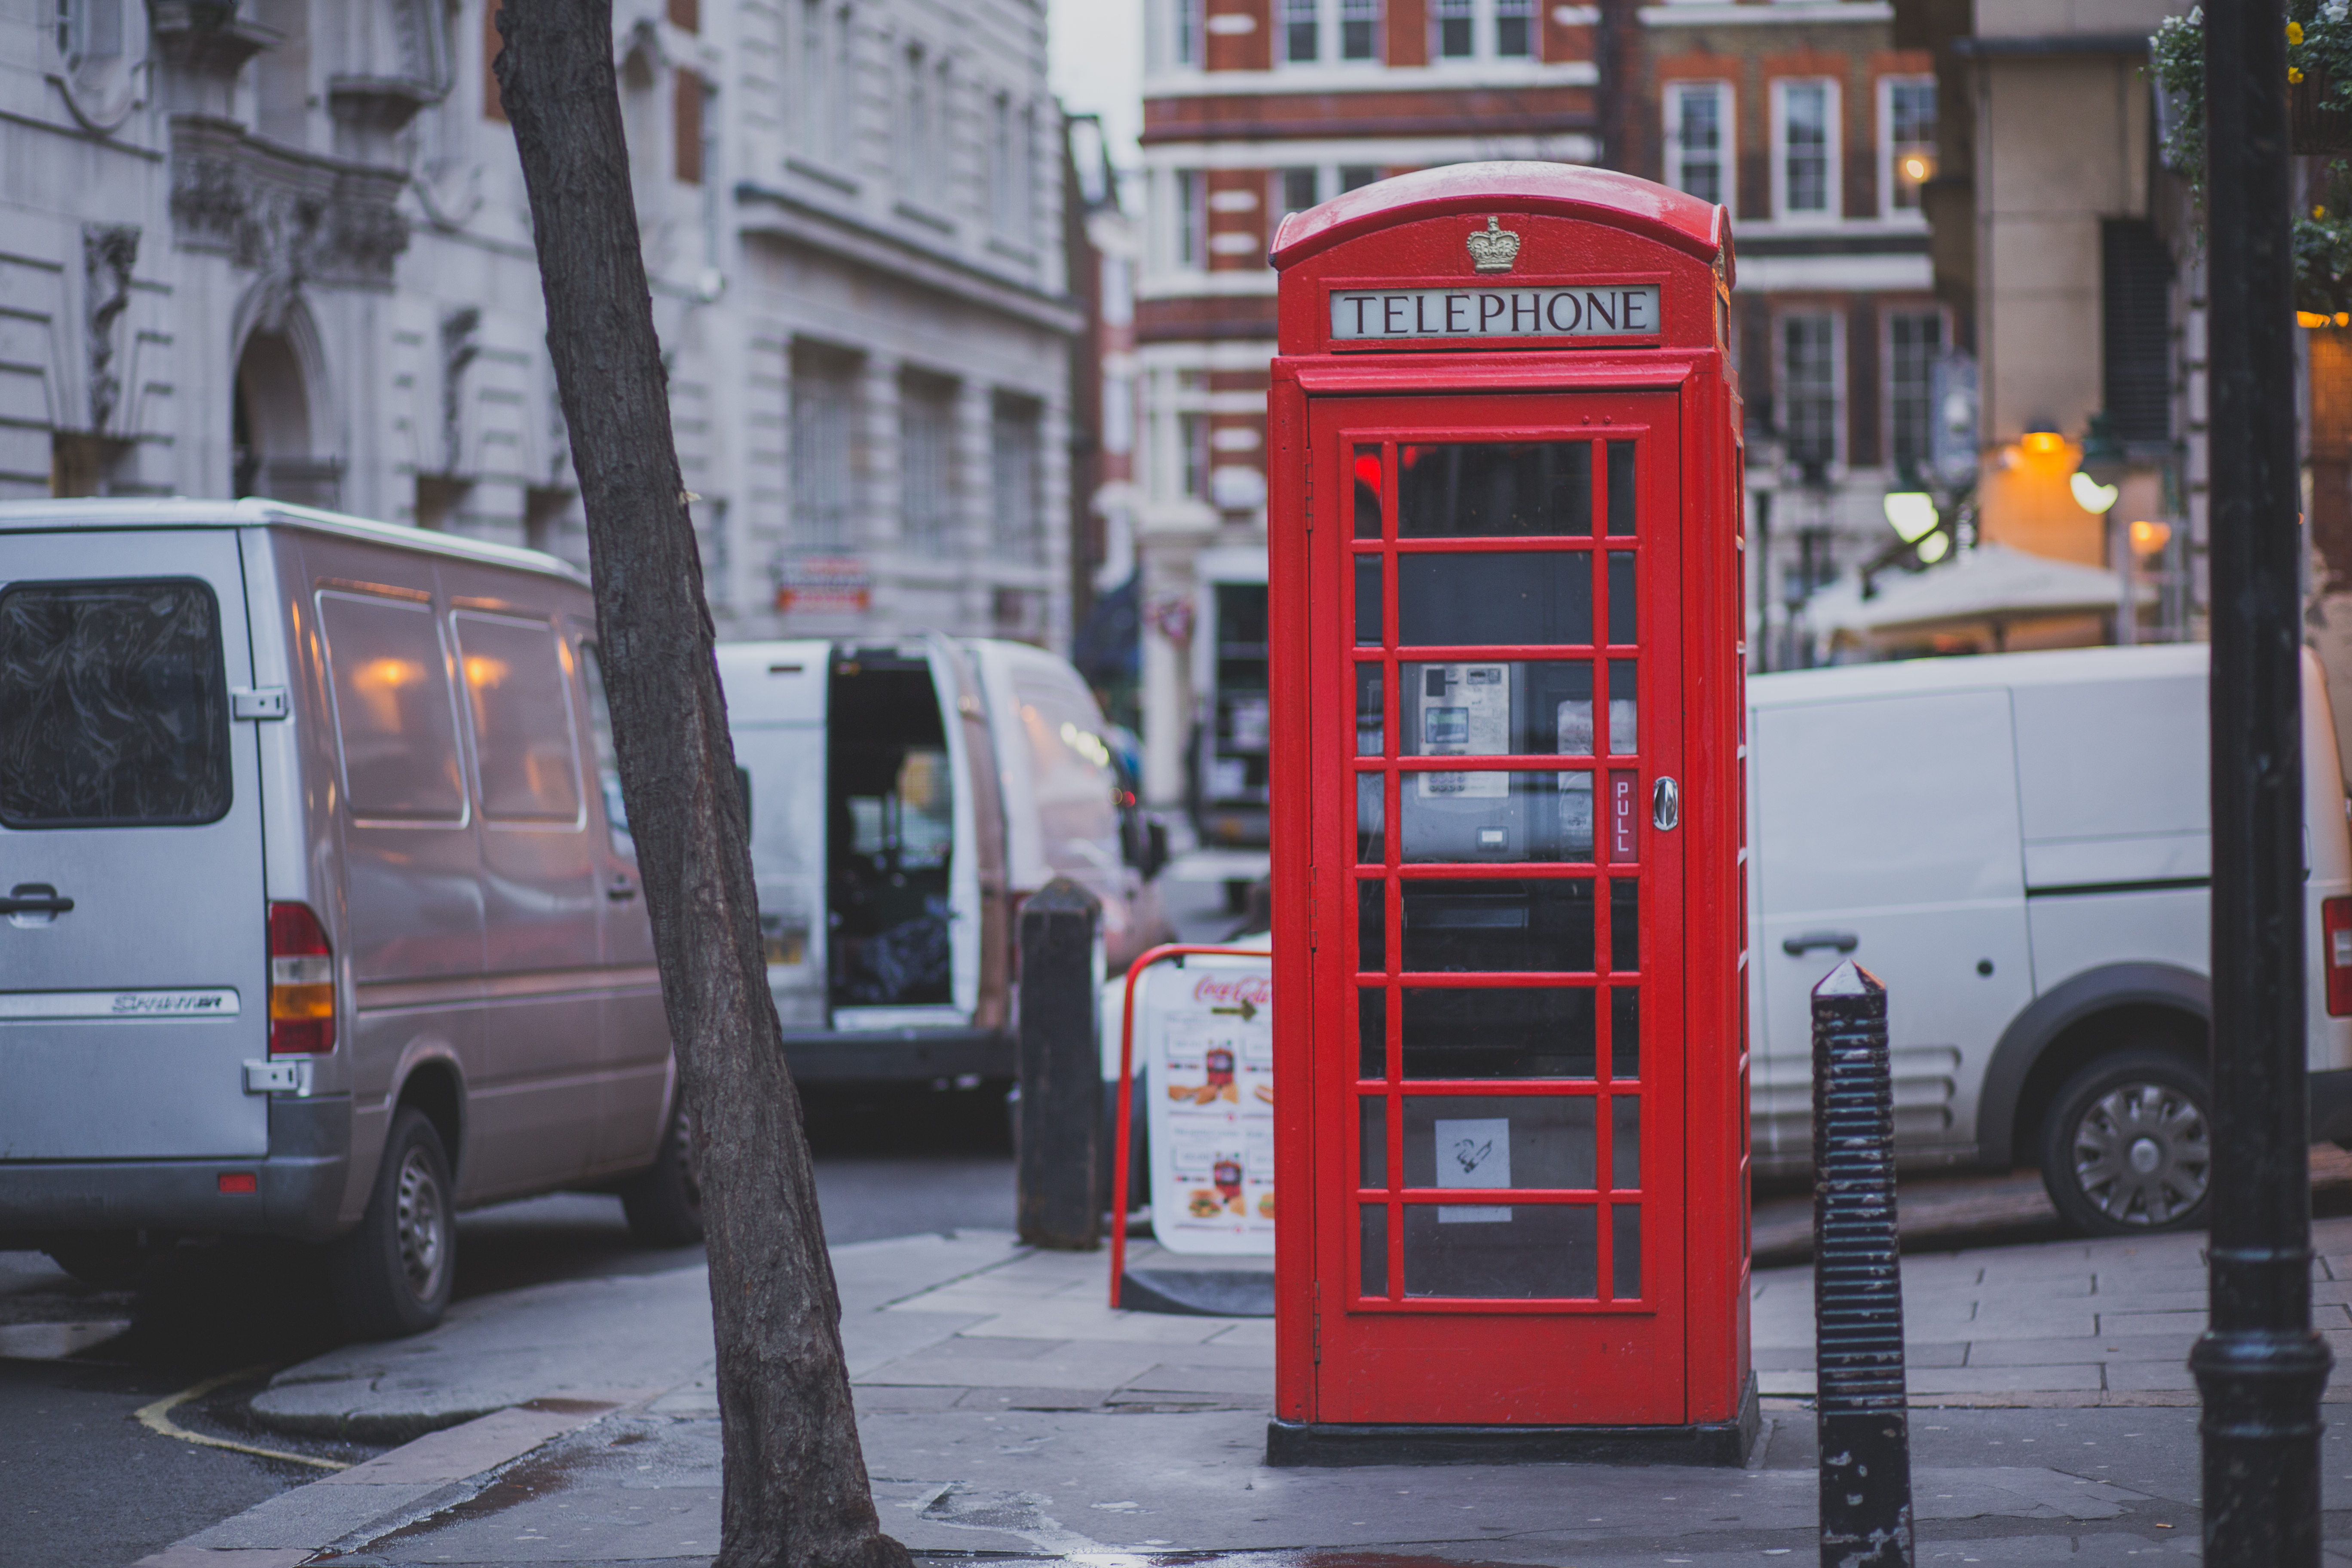 Hd Wallpaper Of Cool Cars Payphone 183 Free Stock Photo